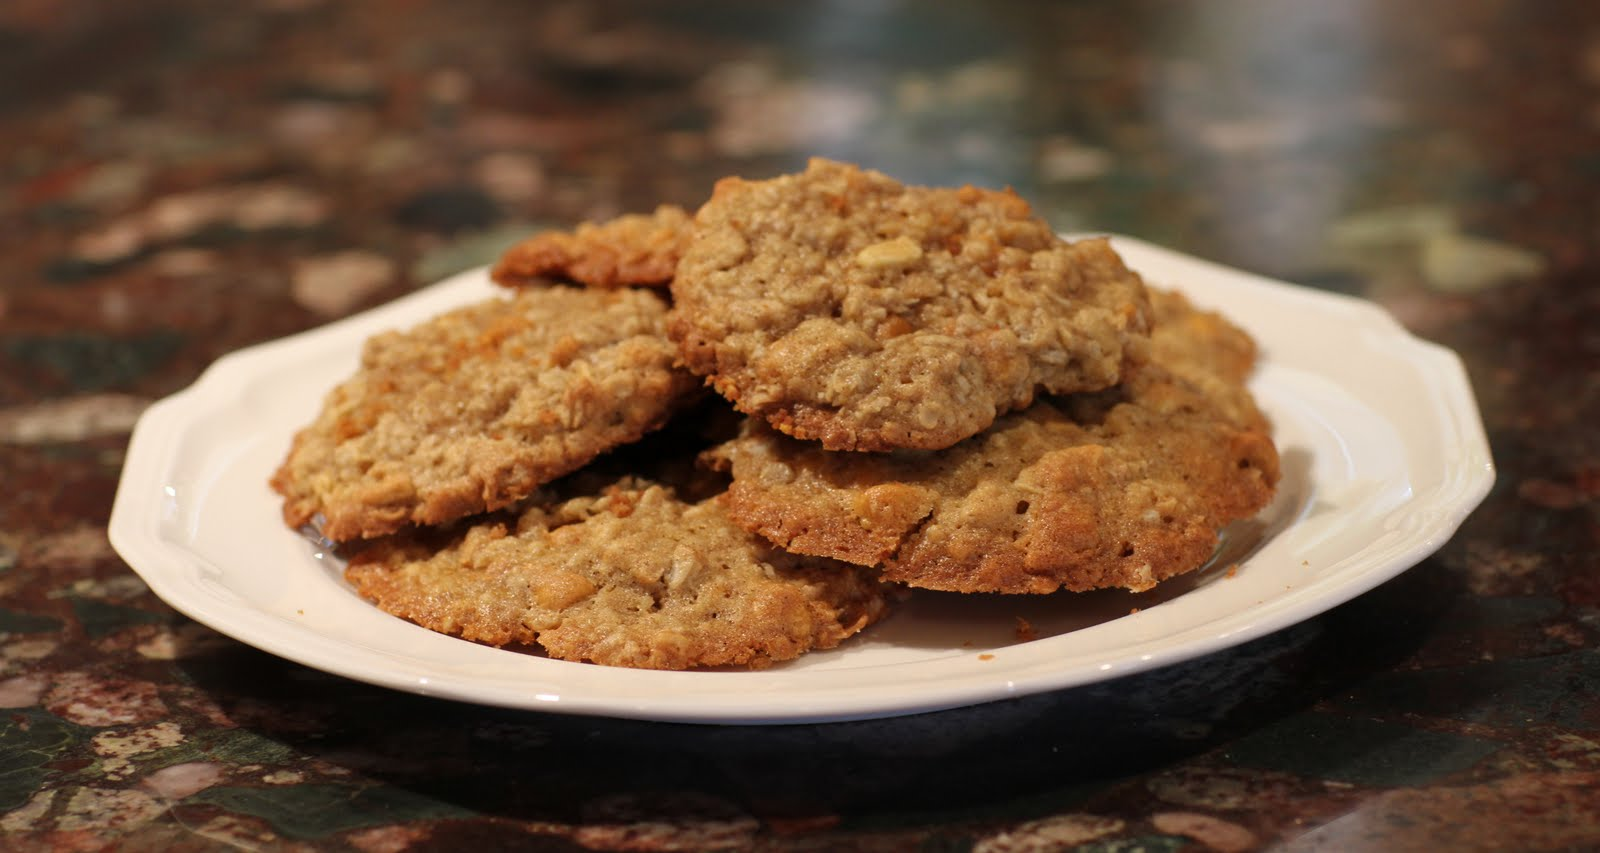 For the Love of Food: Apple Butterscotch Oatmeal Cookies